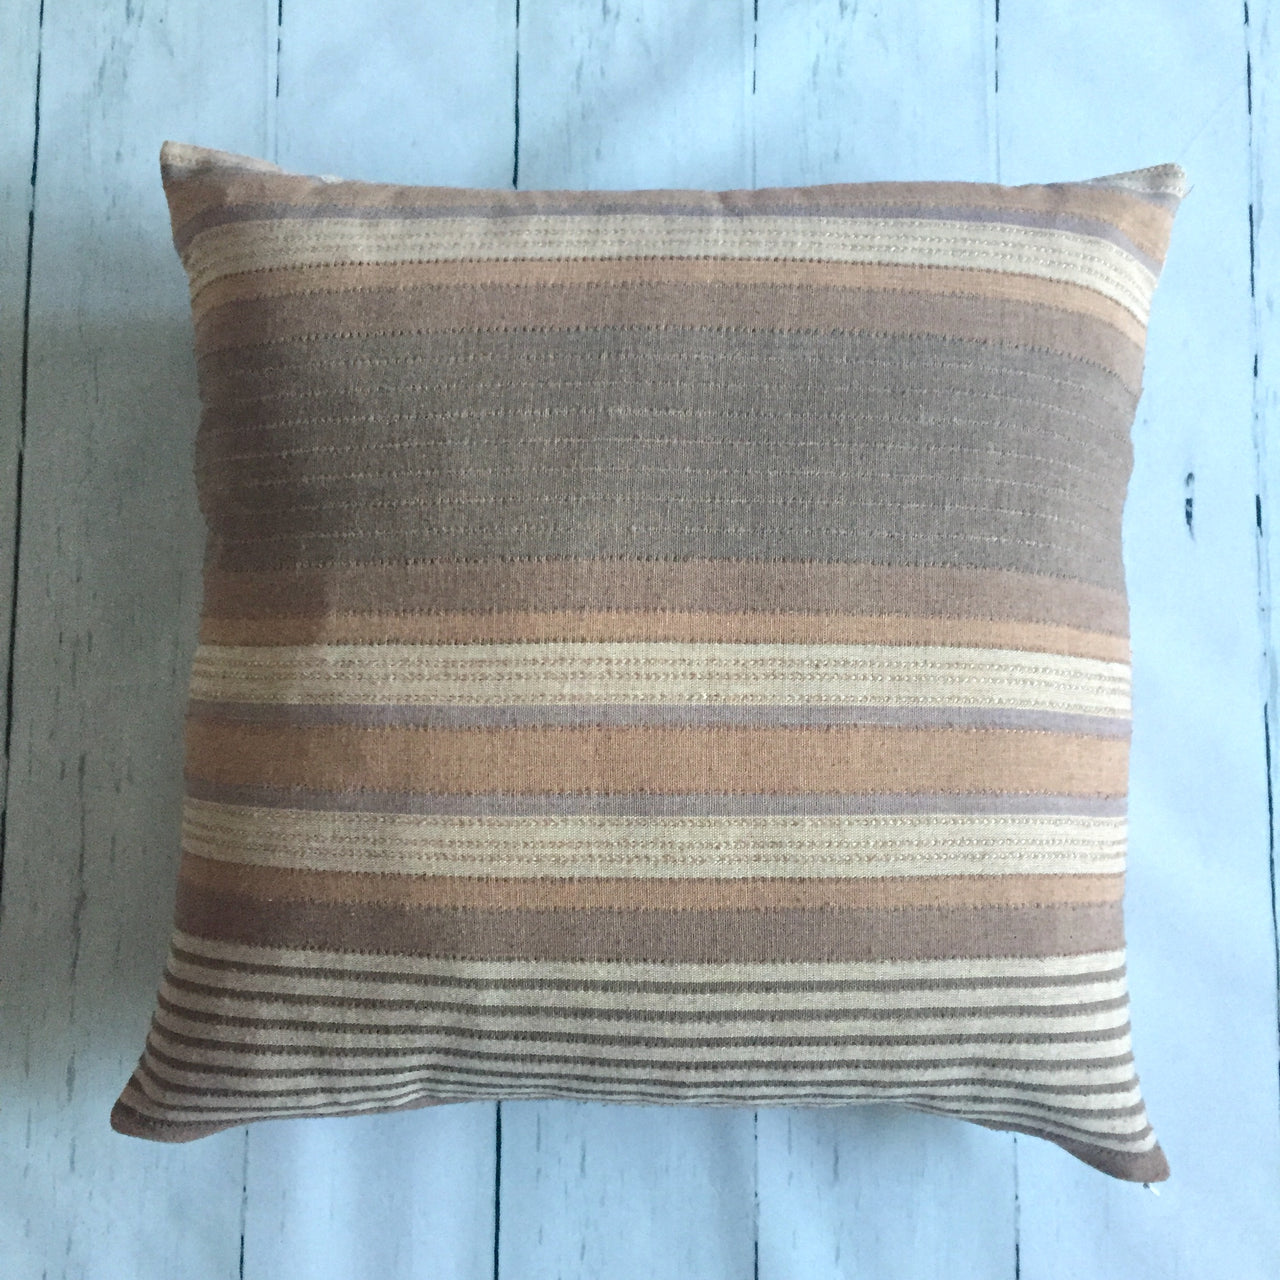 boho-woven-stripe-hilary-hope-floor-pillow-eco-friendly-home-decor-sustainable-handmade-front